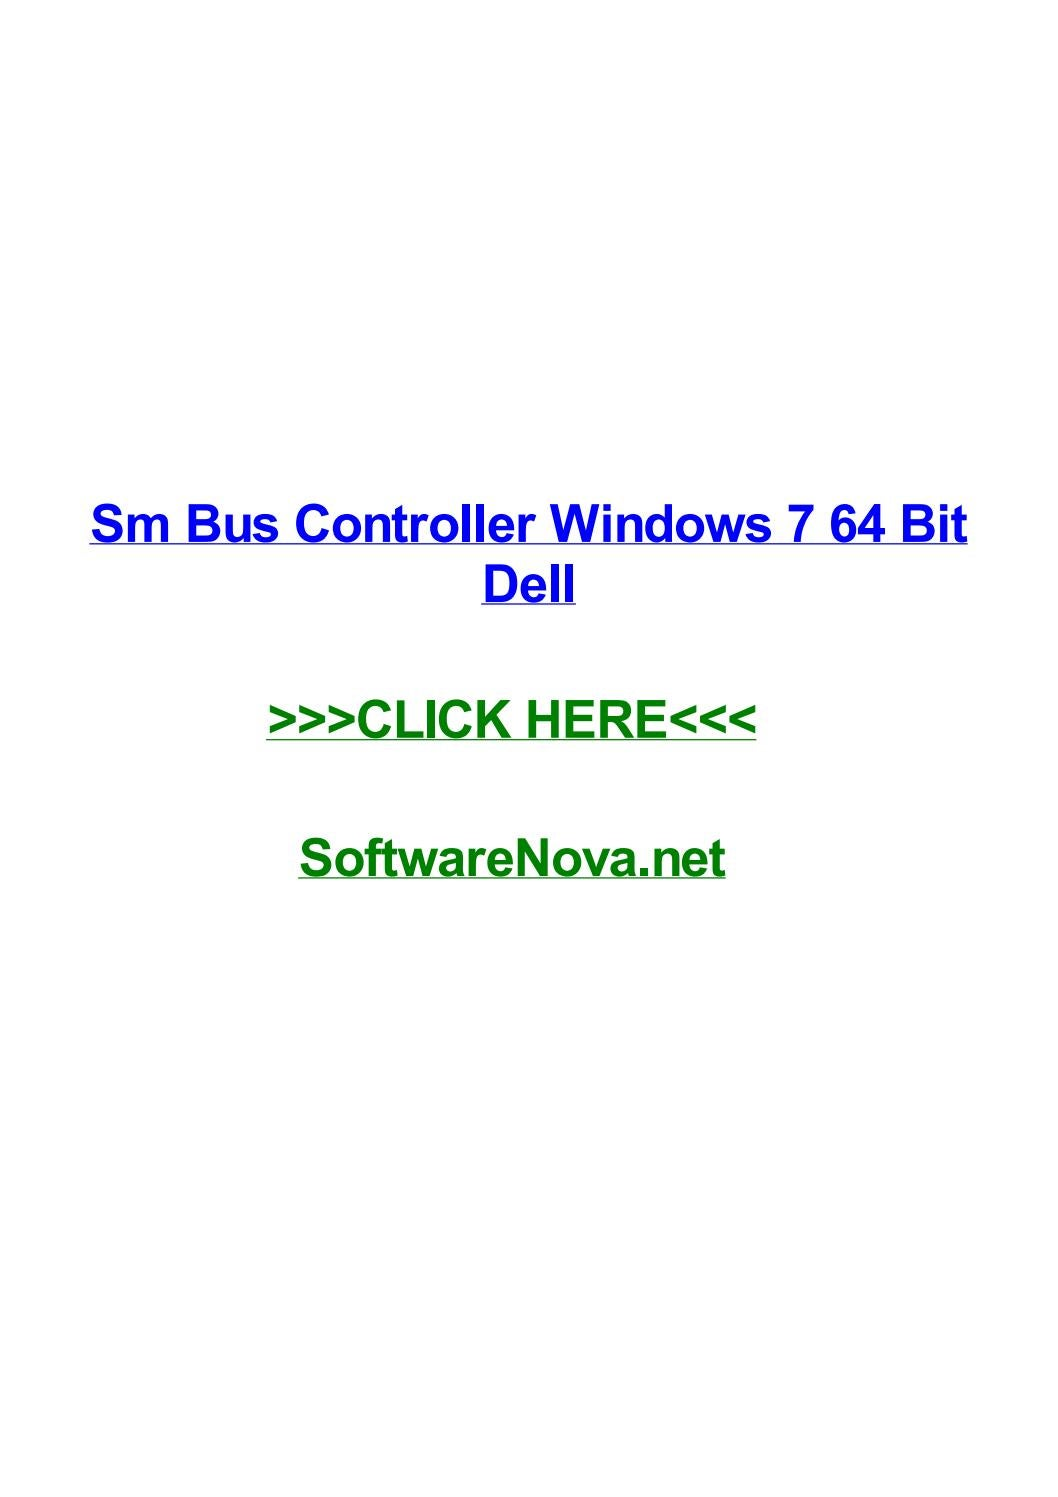 TÉLÉCHARGER CONTROLEUR DE BUS SM WINDOWS 7 DELL